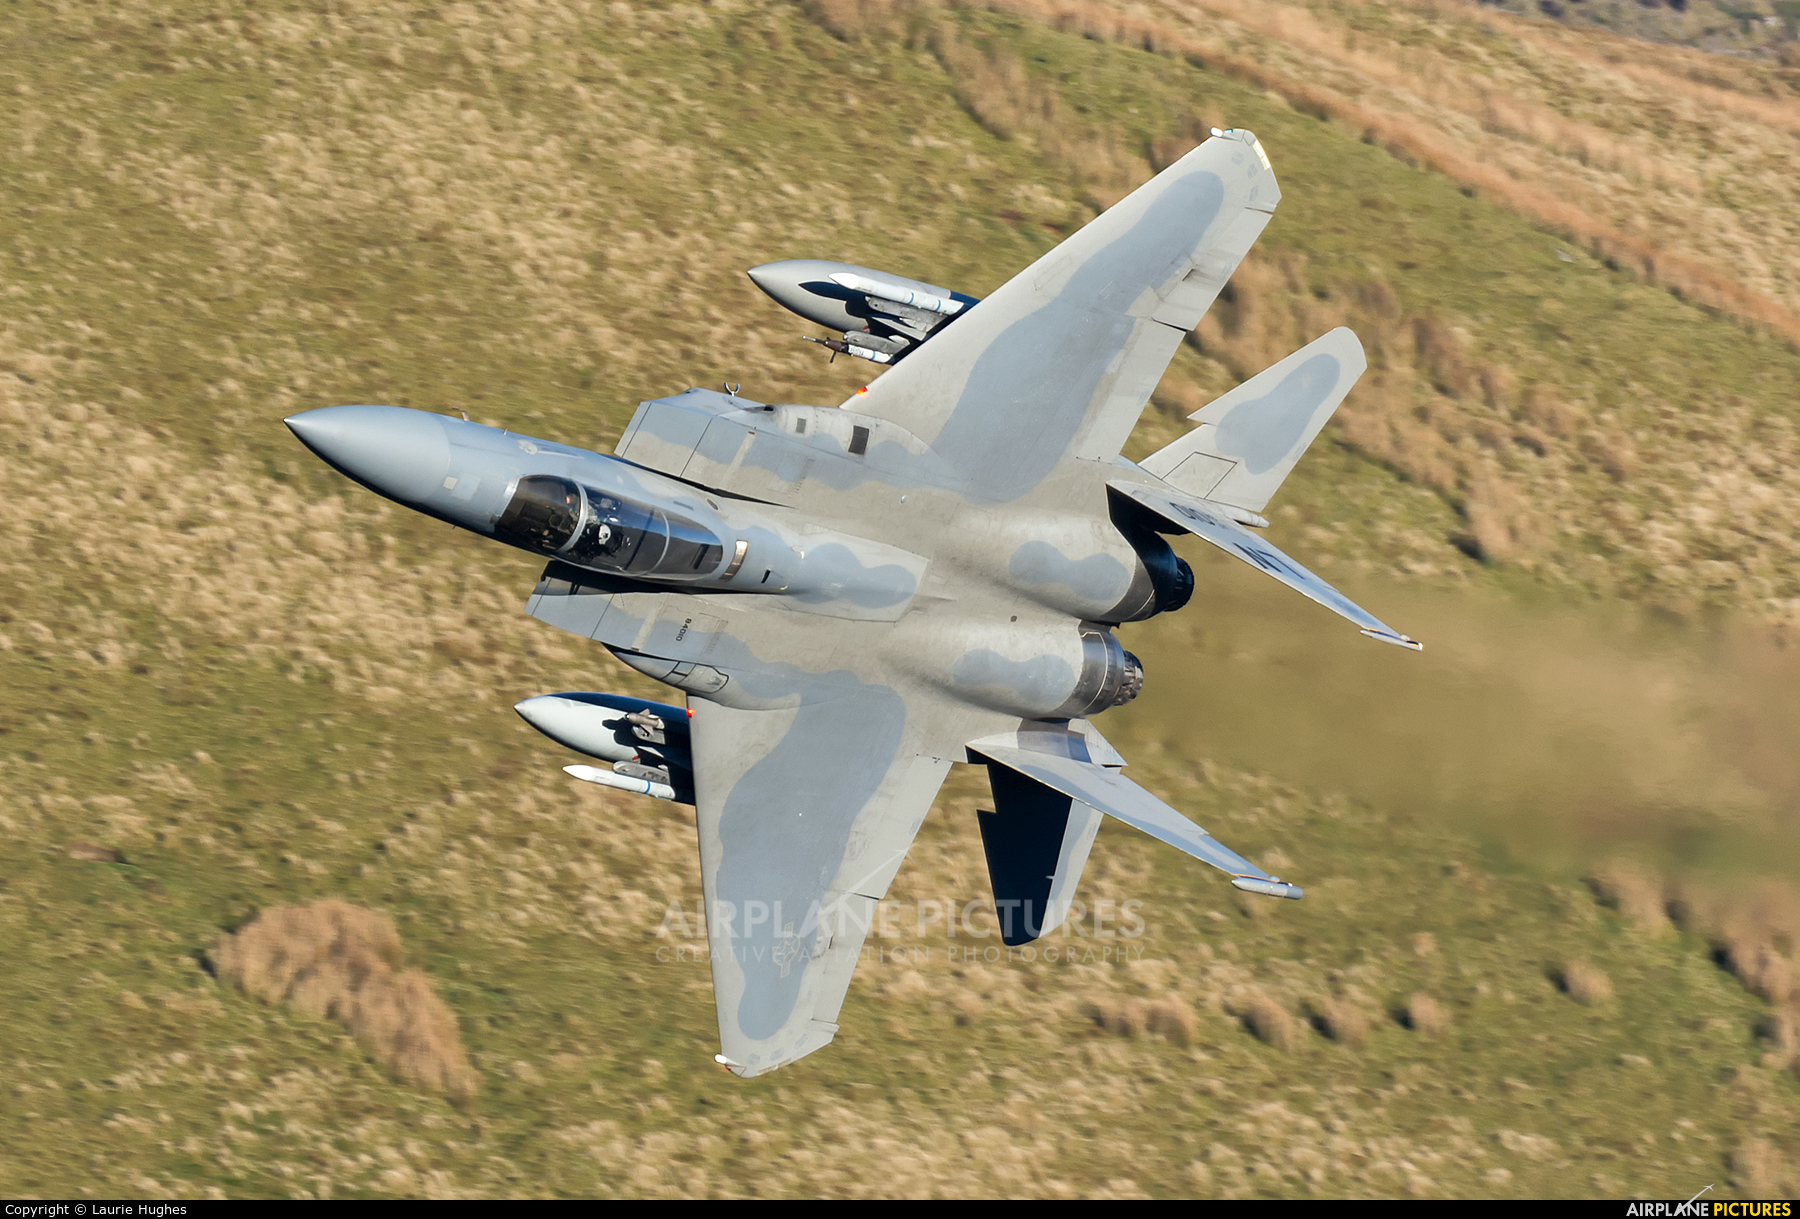 USA - Air Force 86-0010 aircraft at Machynlleth Loop - LFA 7